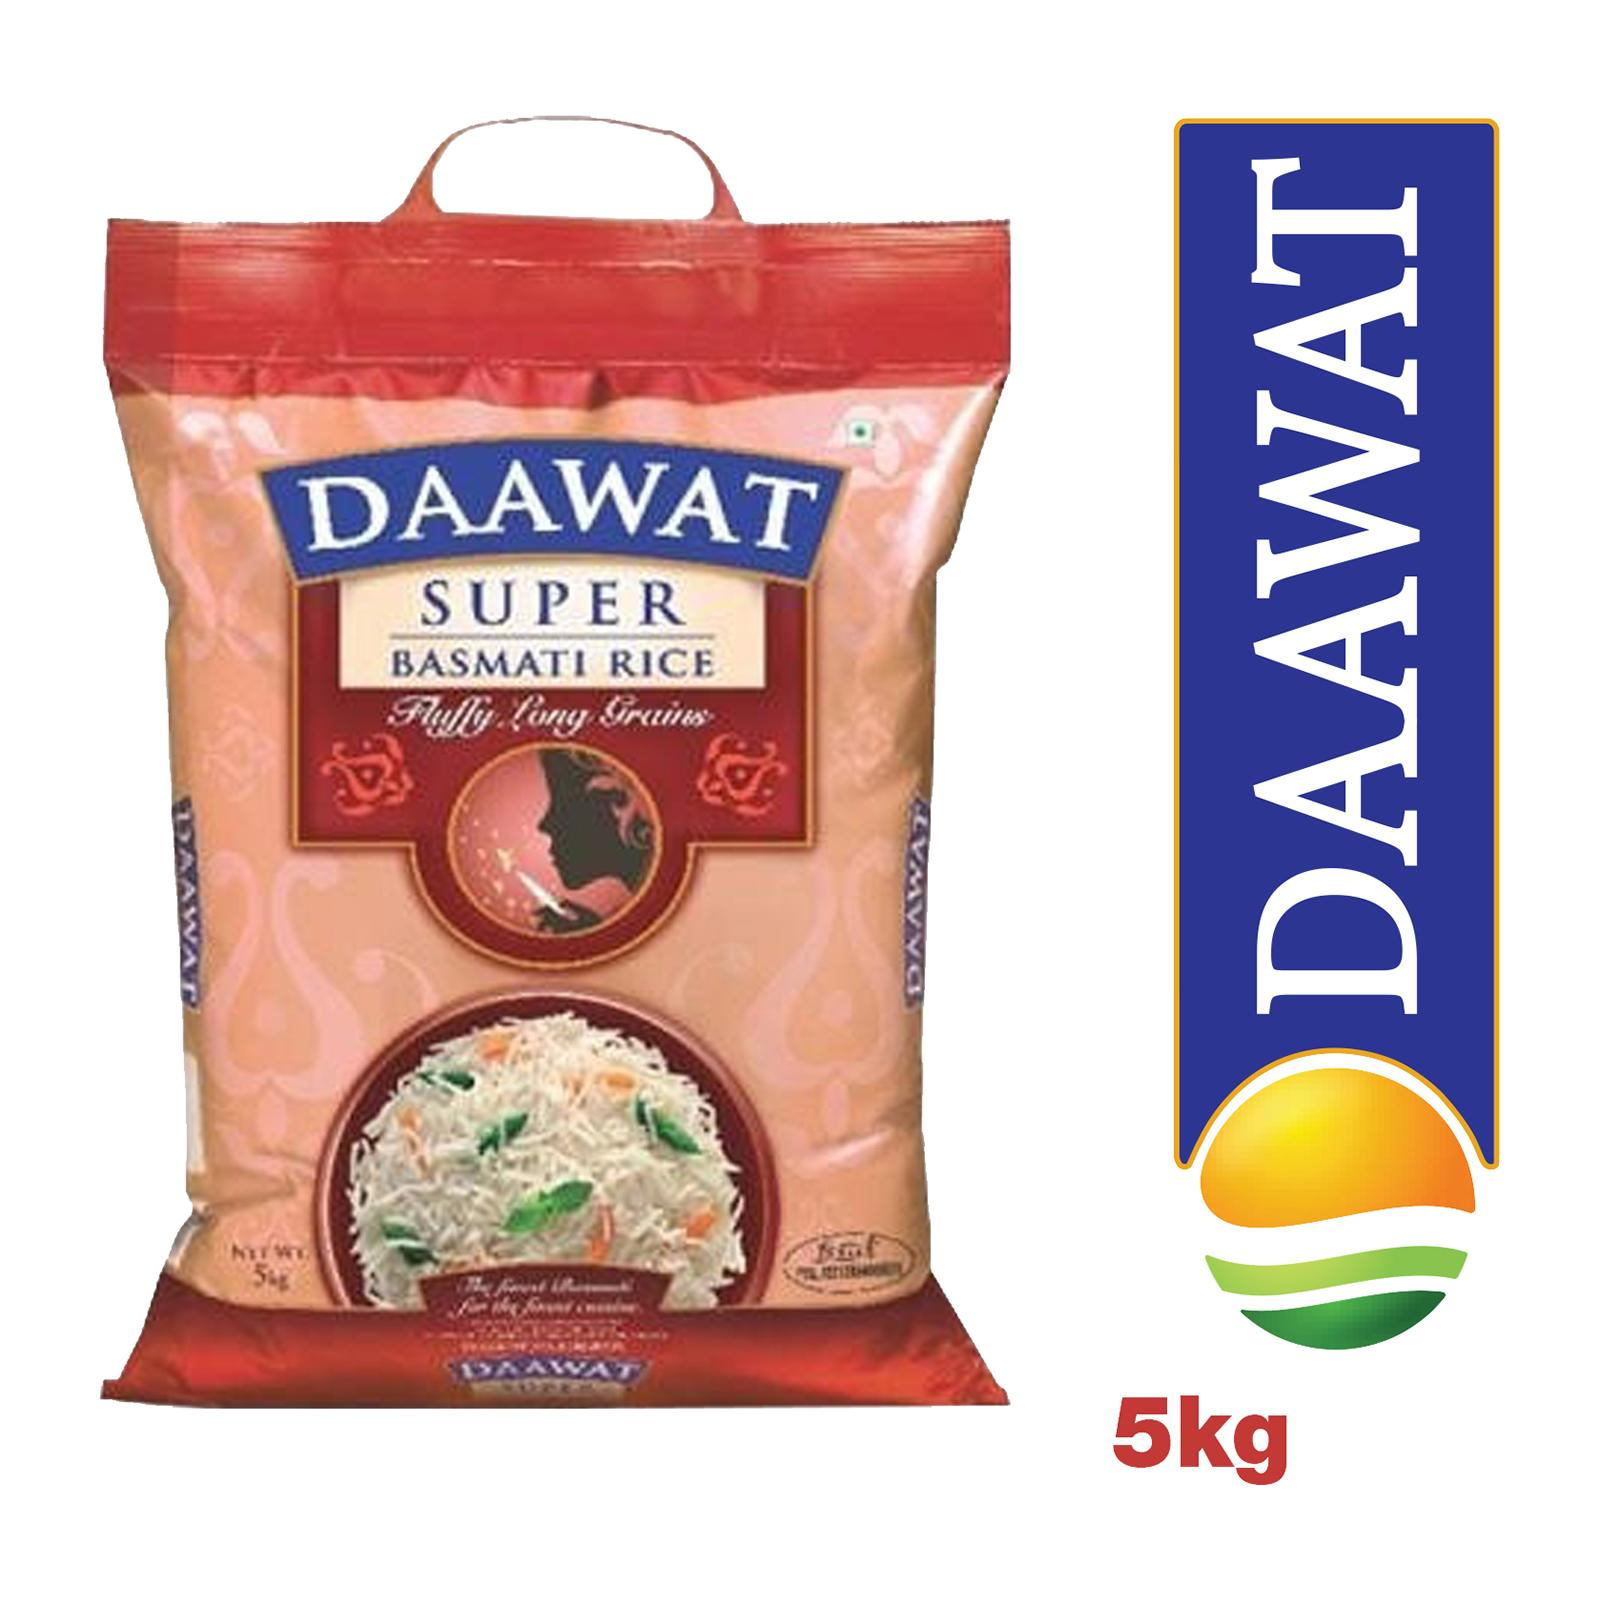 Daawat Super Basmati Rice - By Sonnamera